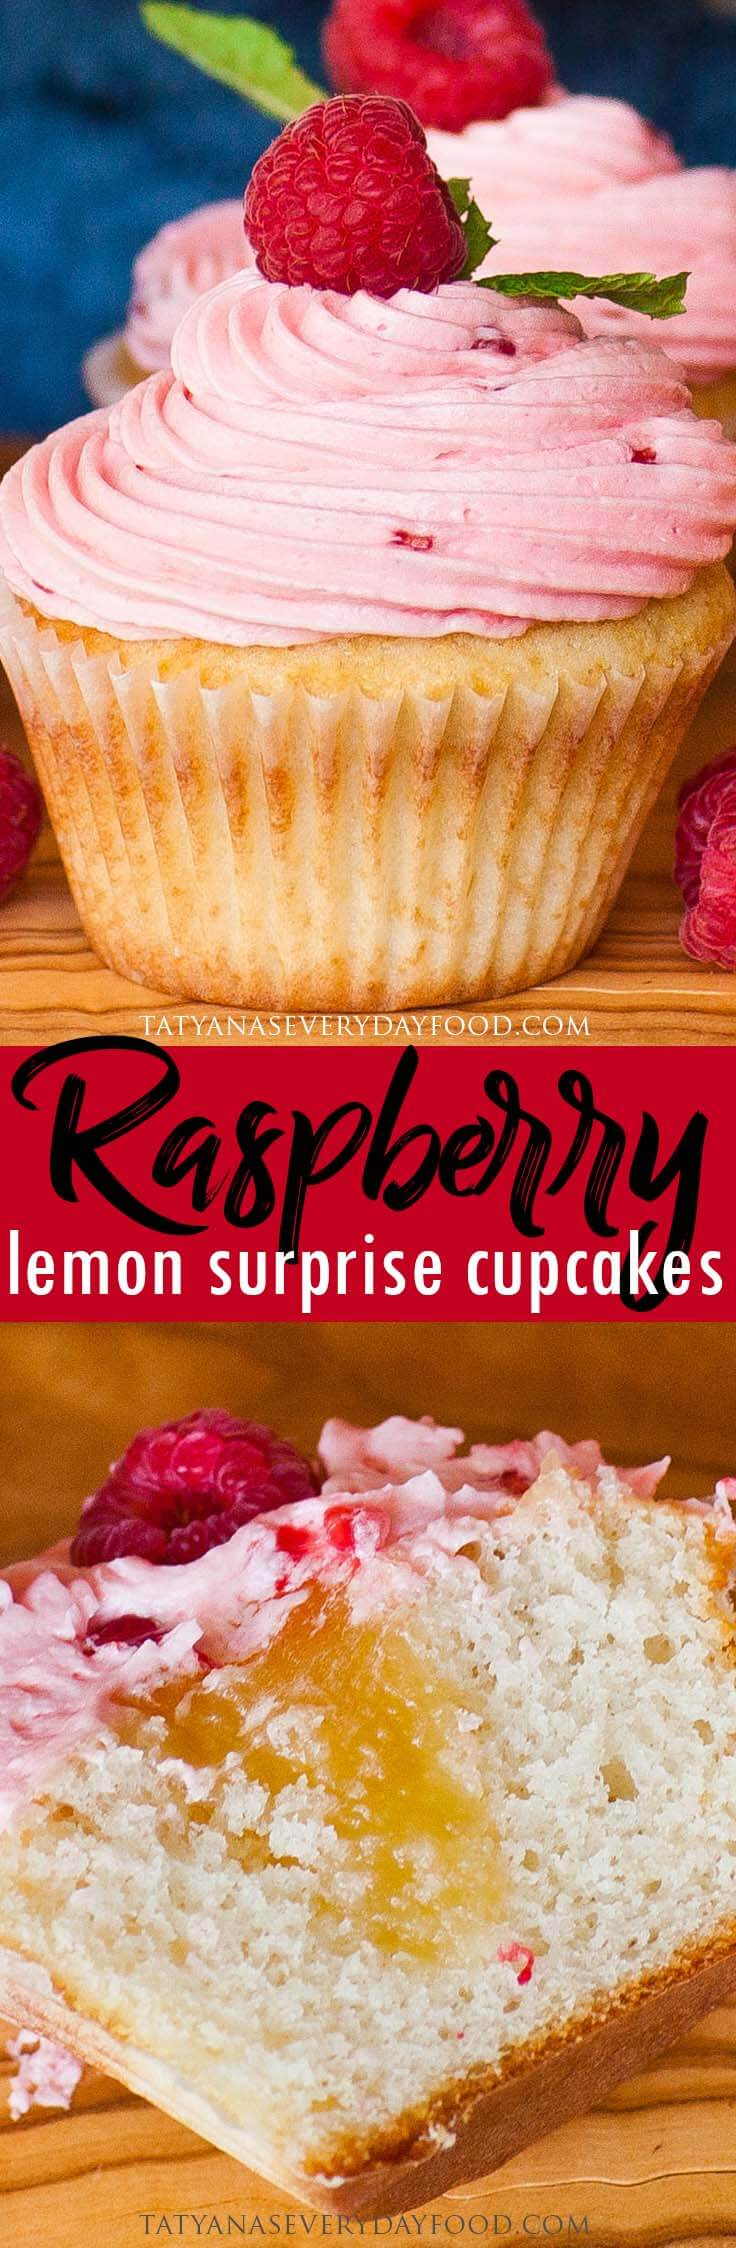 Raspberry Lemon Cupcakes recipe with video